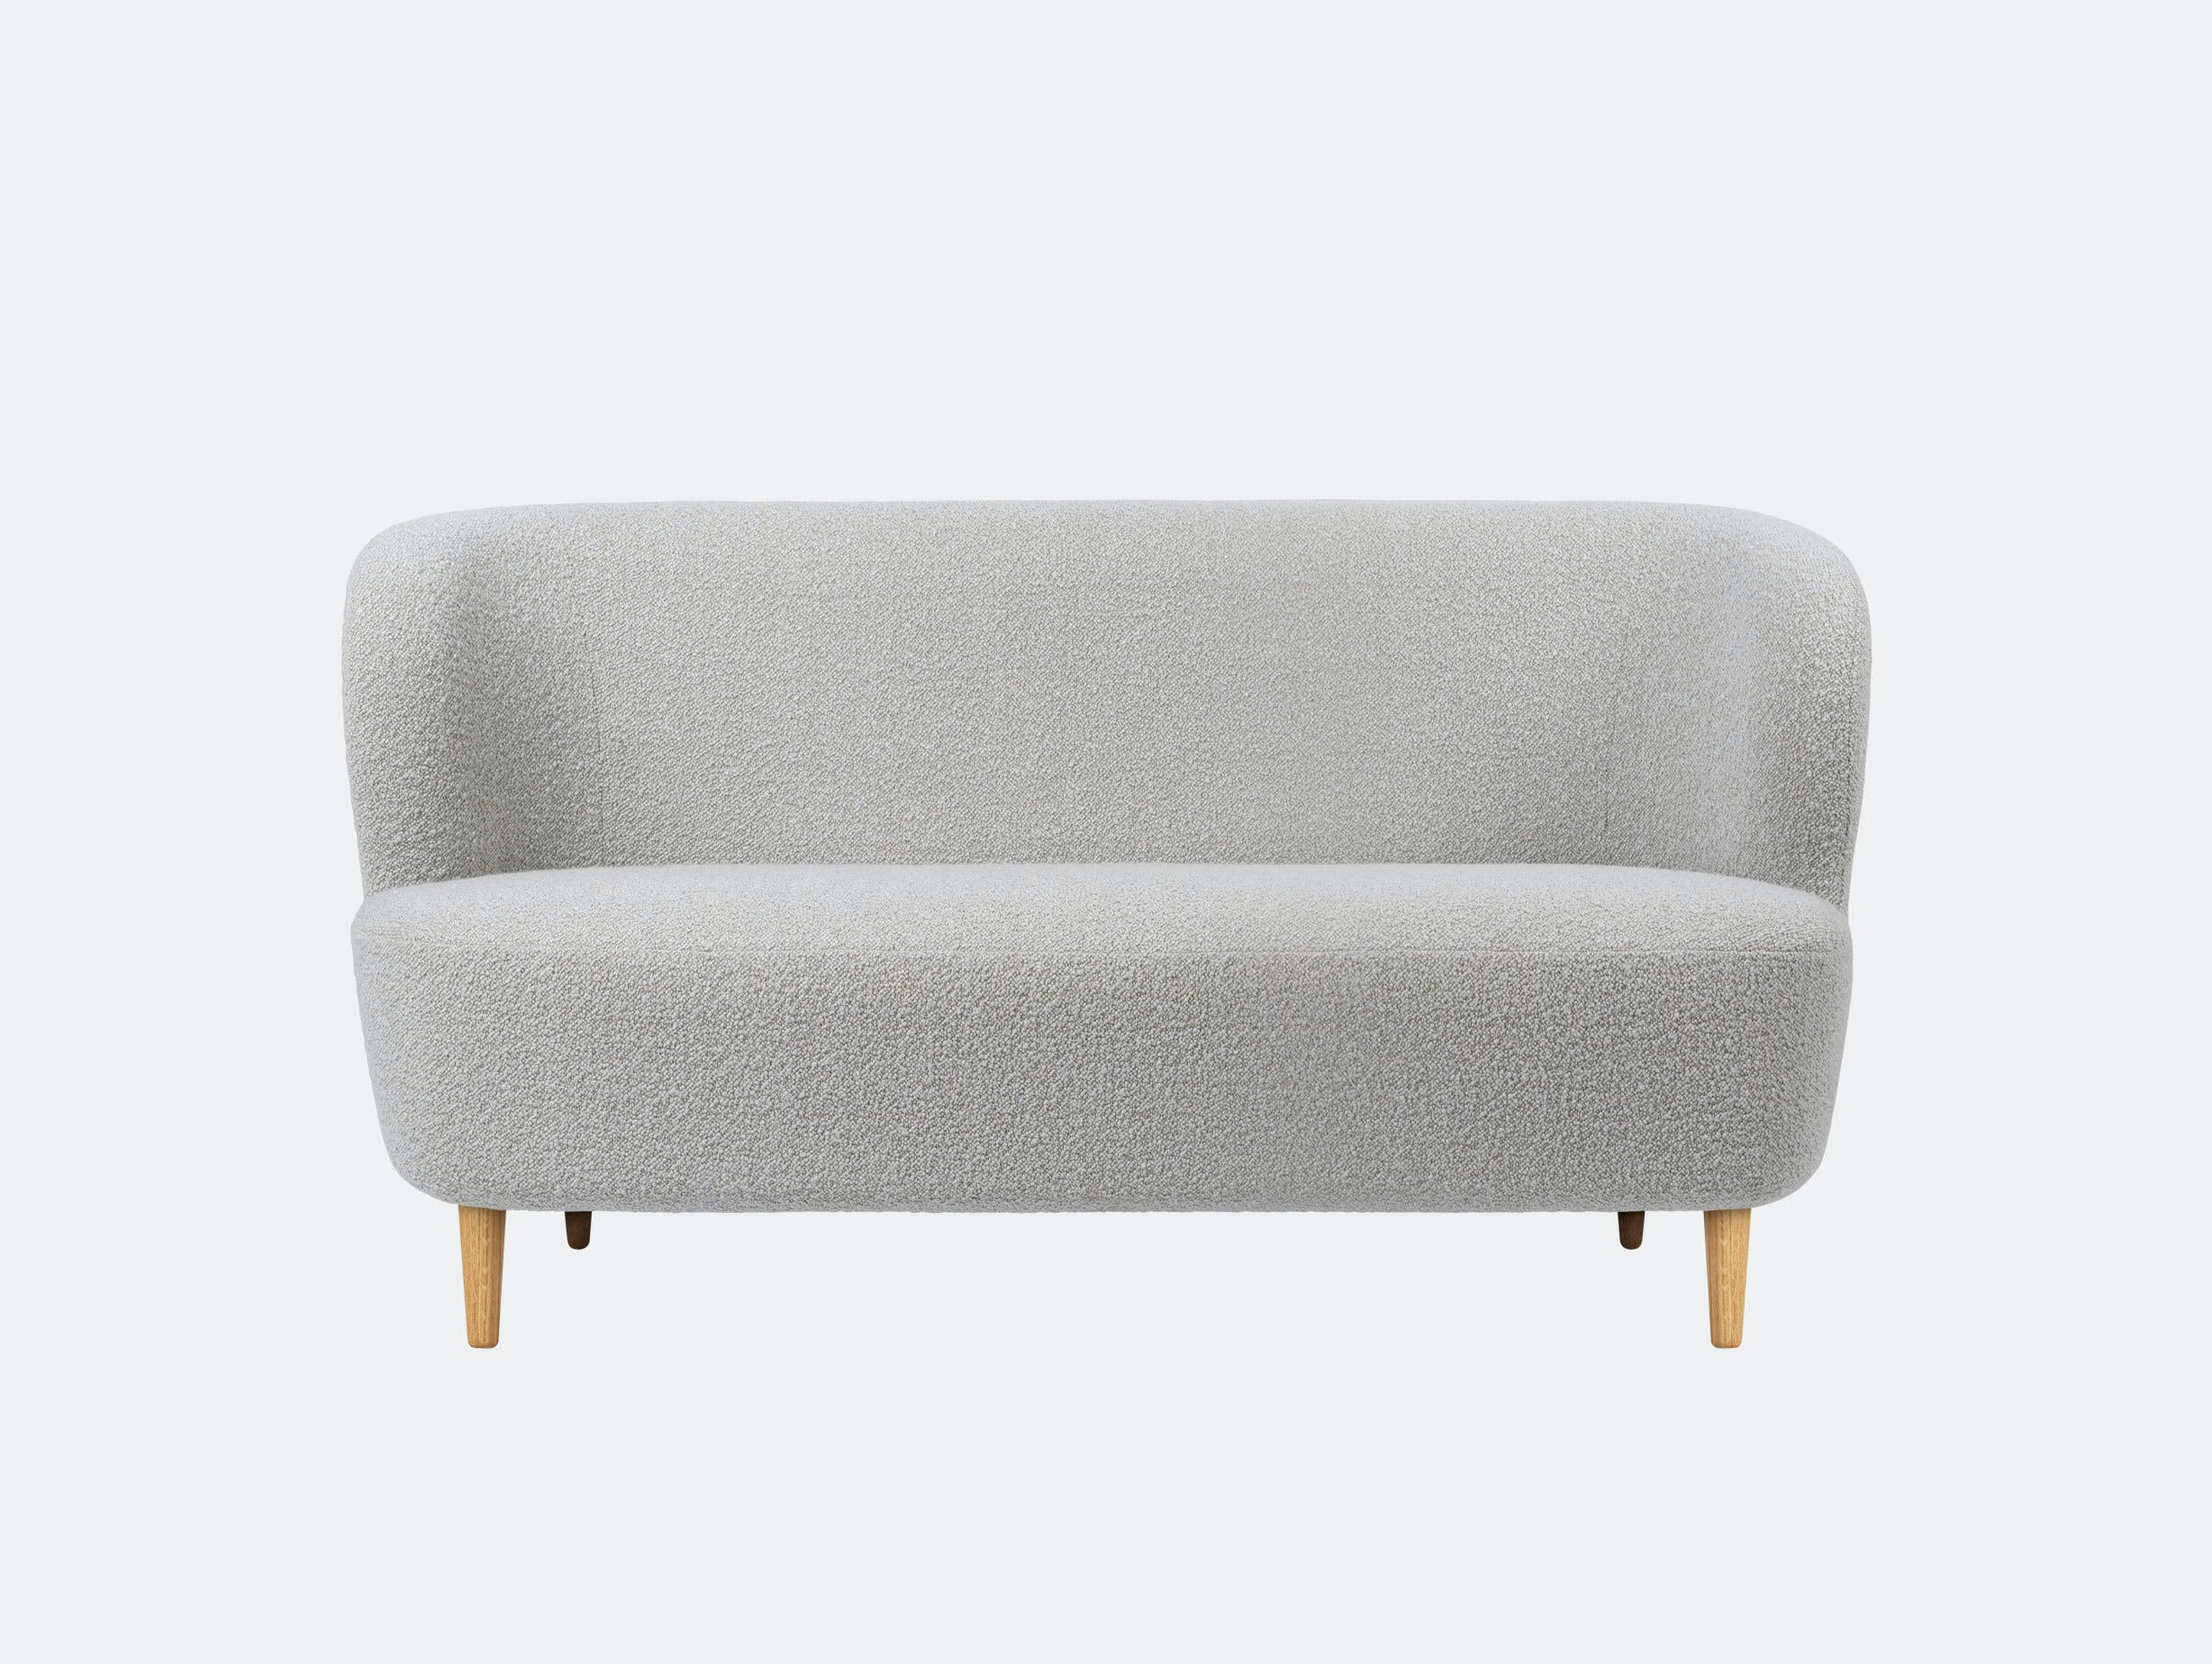 Gubi Stay Sofa 150x70 Oak Dedar Karakorum 004